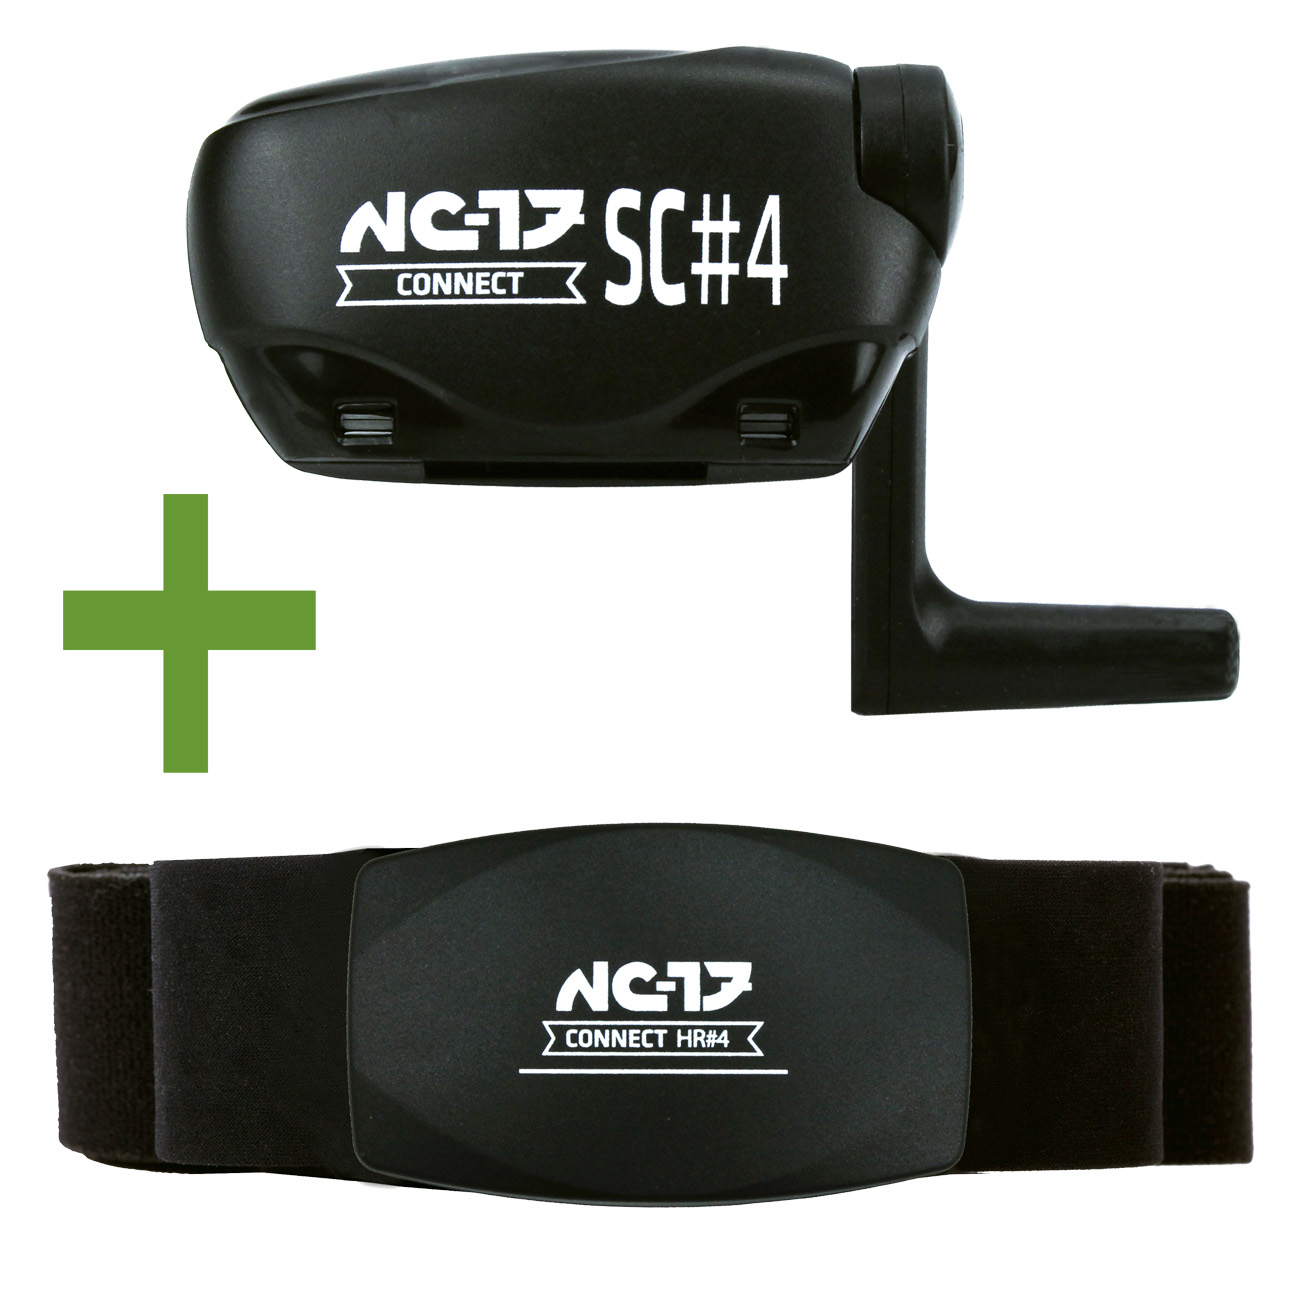 NC-17 Connect Set HR#4 und SC#4<br/>ANT+ und Bluetooth 4.0<br/>